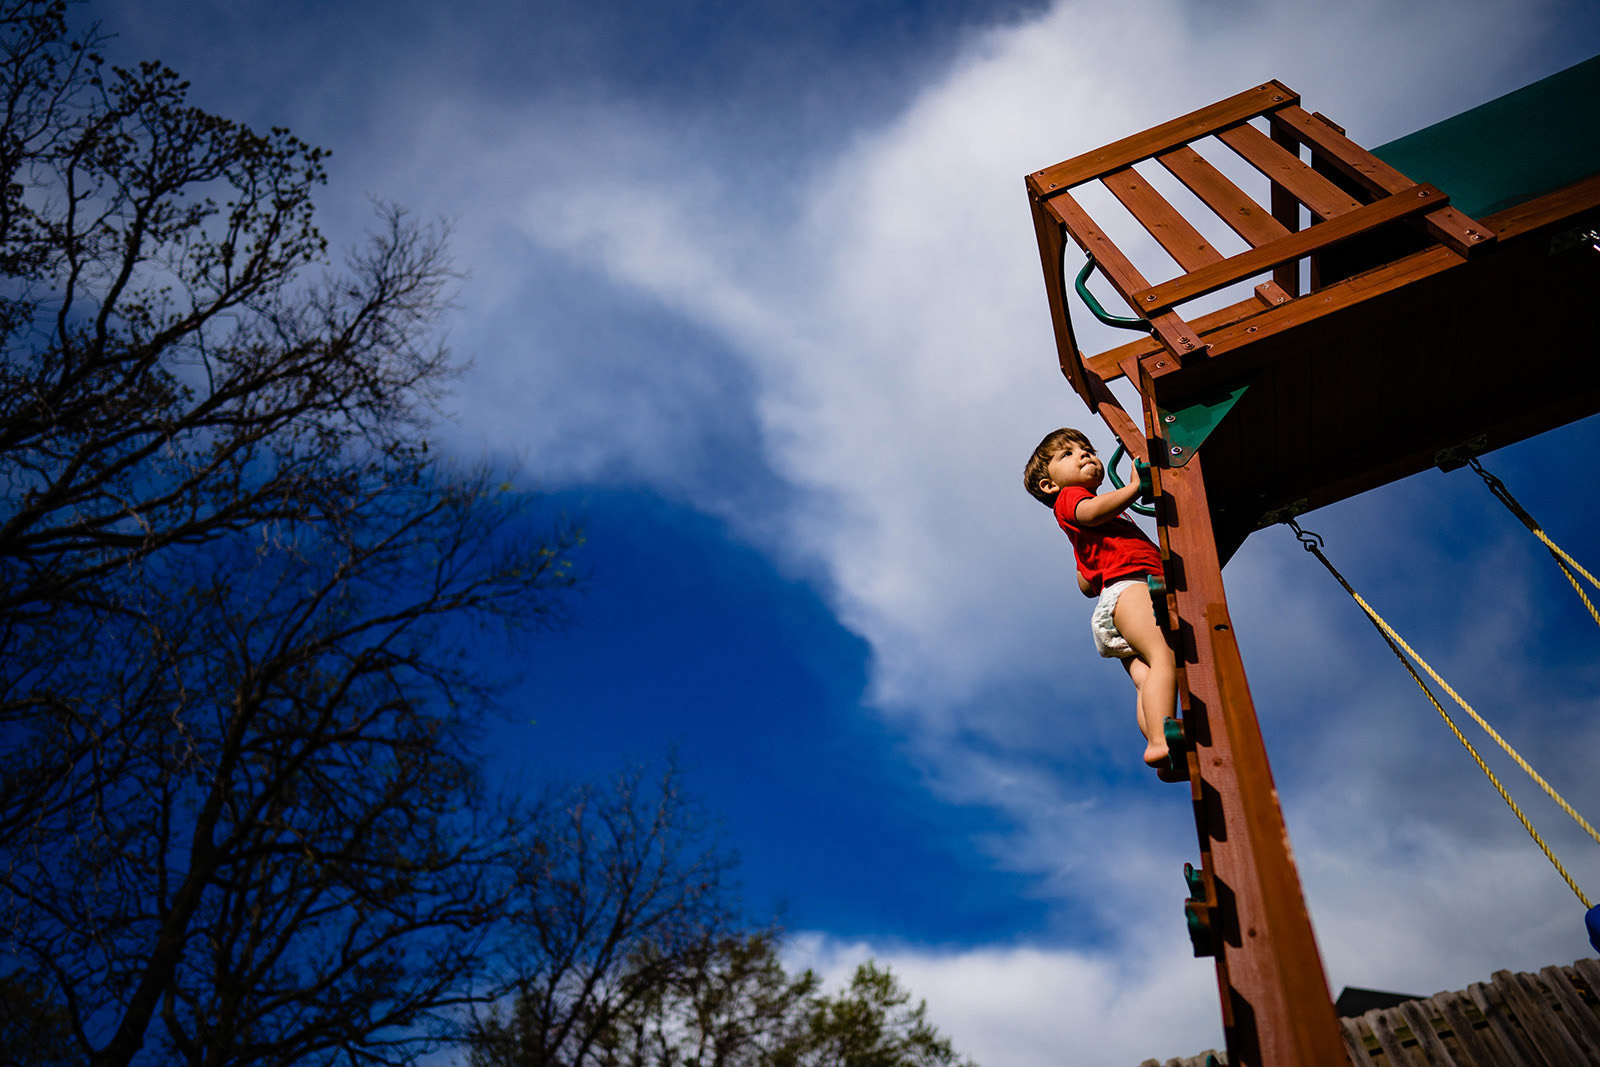 Boy climbs treehouse ladder, photo taken from below for creative camera angle